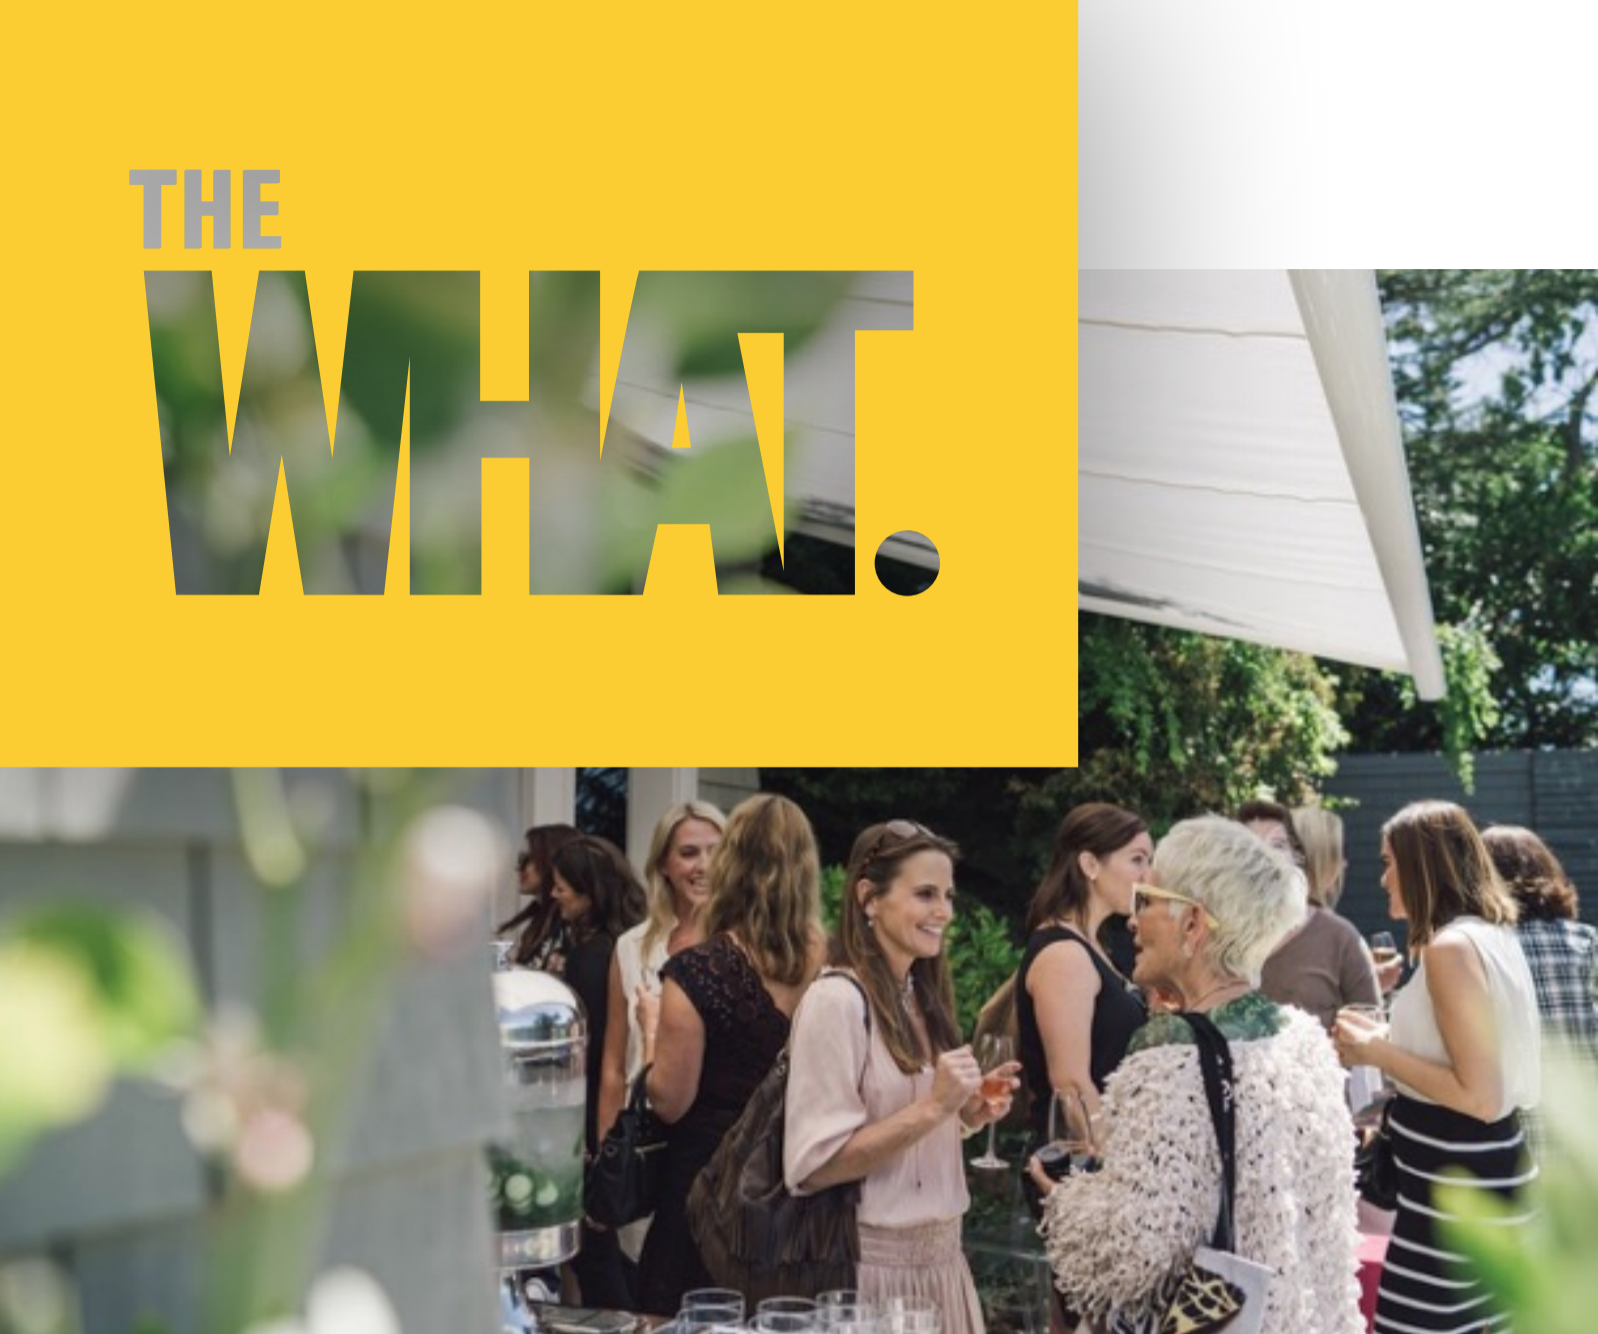 The What. Live! - I am so looking forward to joining the incredible all-female team at THE WHAT. SUMMIT, a place for smart Perennial women to develop real friendships over real talk (and some really great wine). I will be speaking about THE FEMALE BRAIN and joining an incredible line up which will include many amazing women like Debra Messing (Will & Grace), Tina Sharkey (CEO of Brandless), Caterina Fake (Founder of Flickr), Vendela Vida (novelist), my dear friend Kaja Perina (Editor in chief of Psychology Today), and entrepreneurs in diverse fields.When: October 5, 2018 at 9amWhere: SF Golden Gate Club, San FranciscoRSVP and read more about the event here.